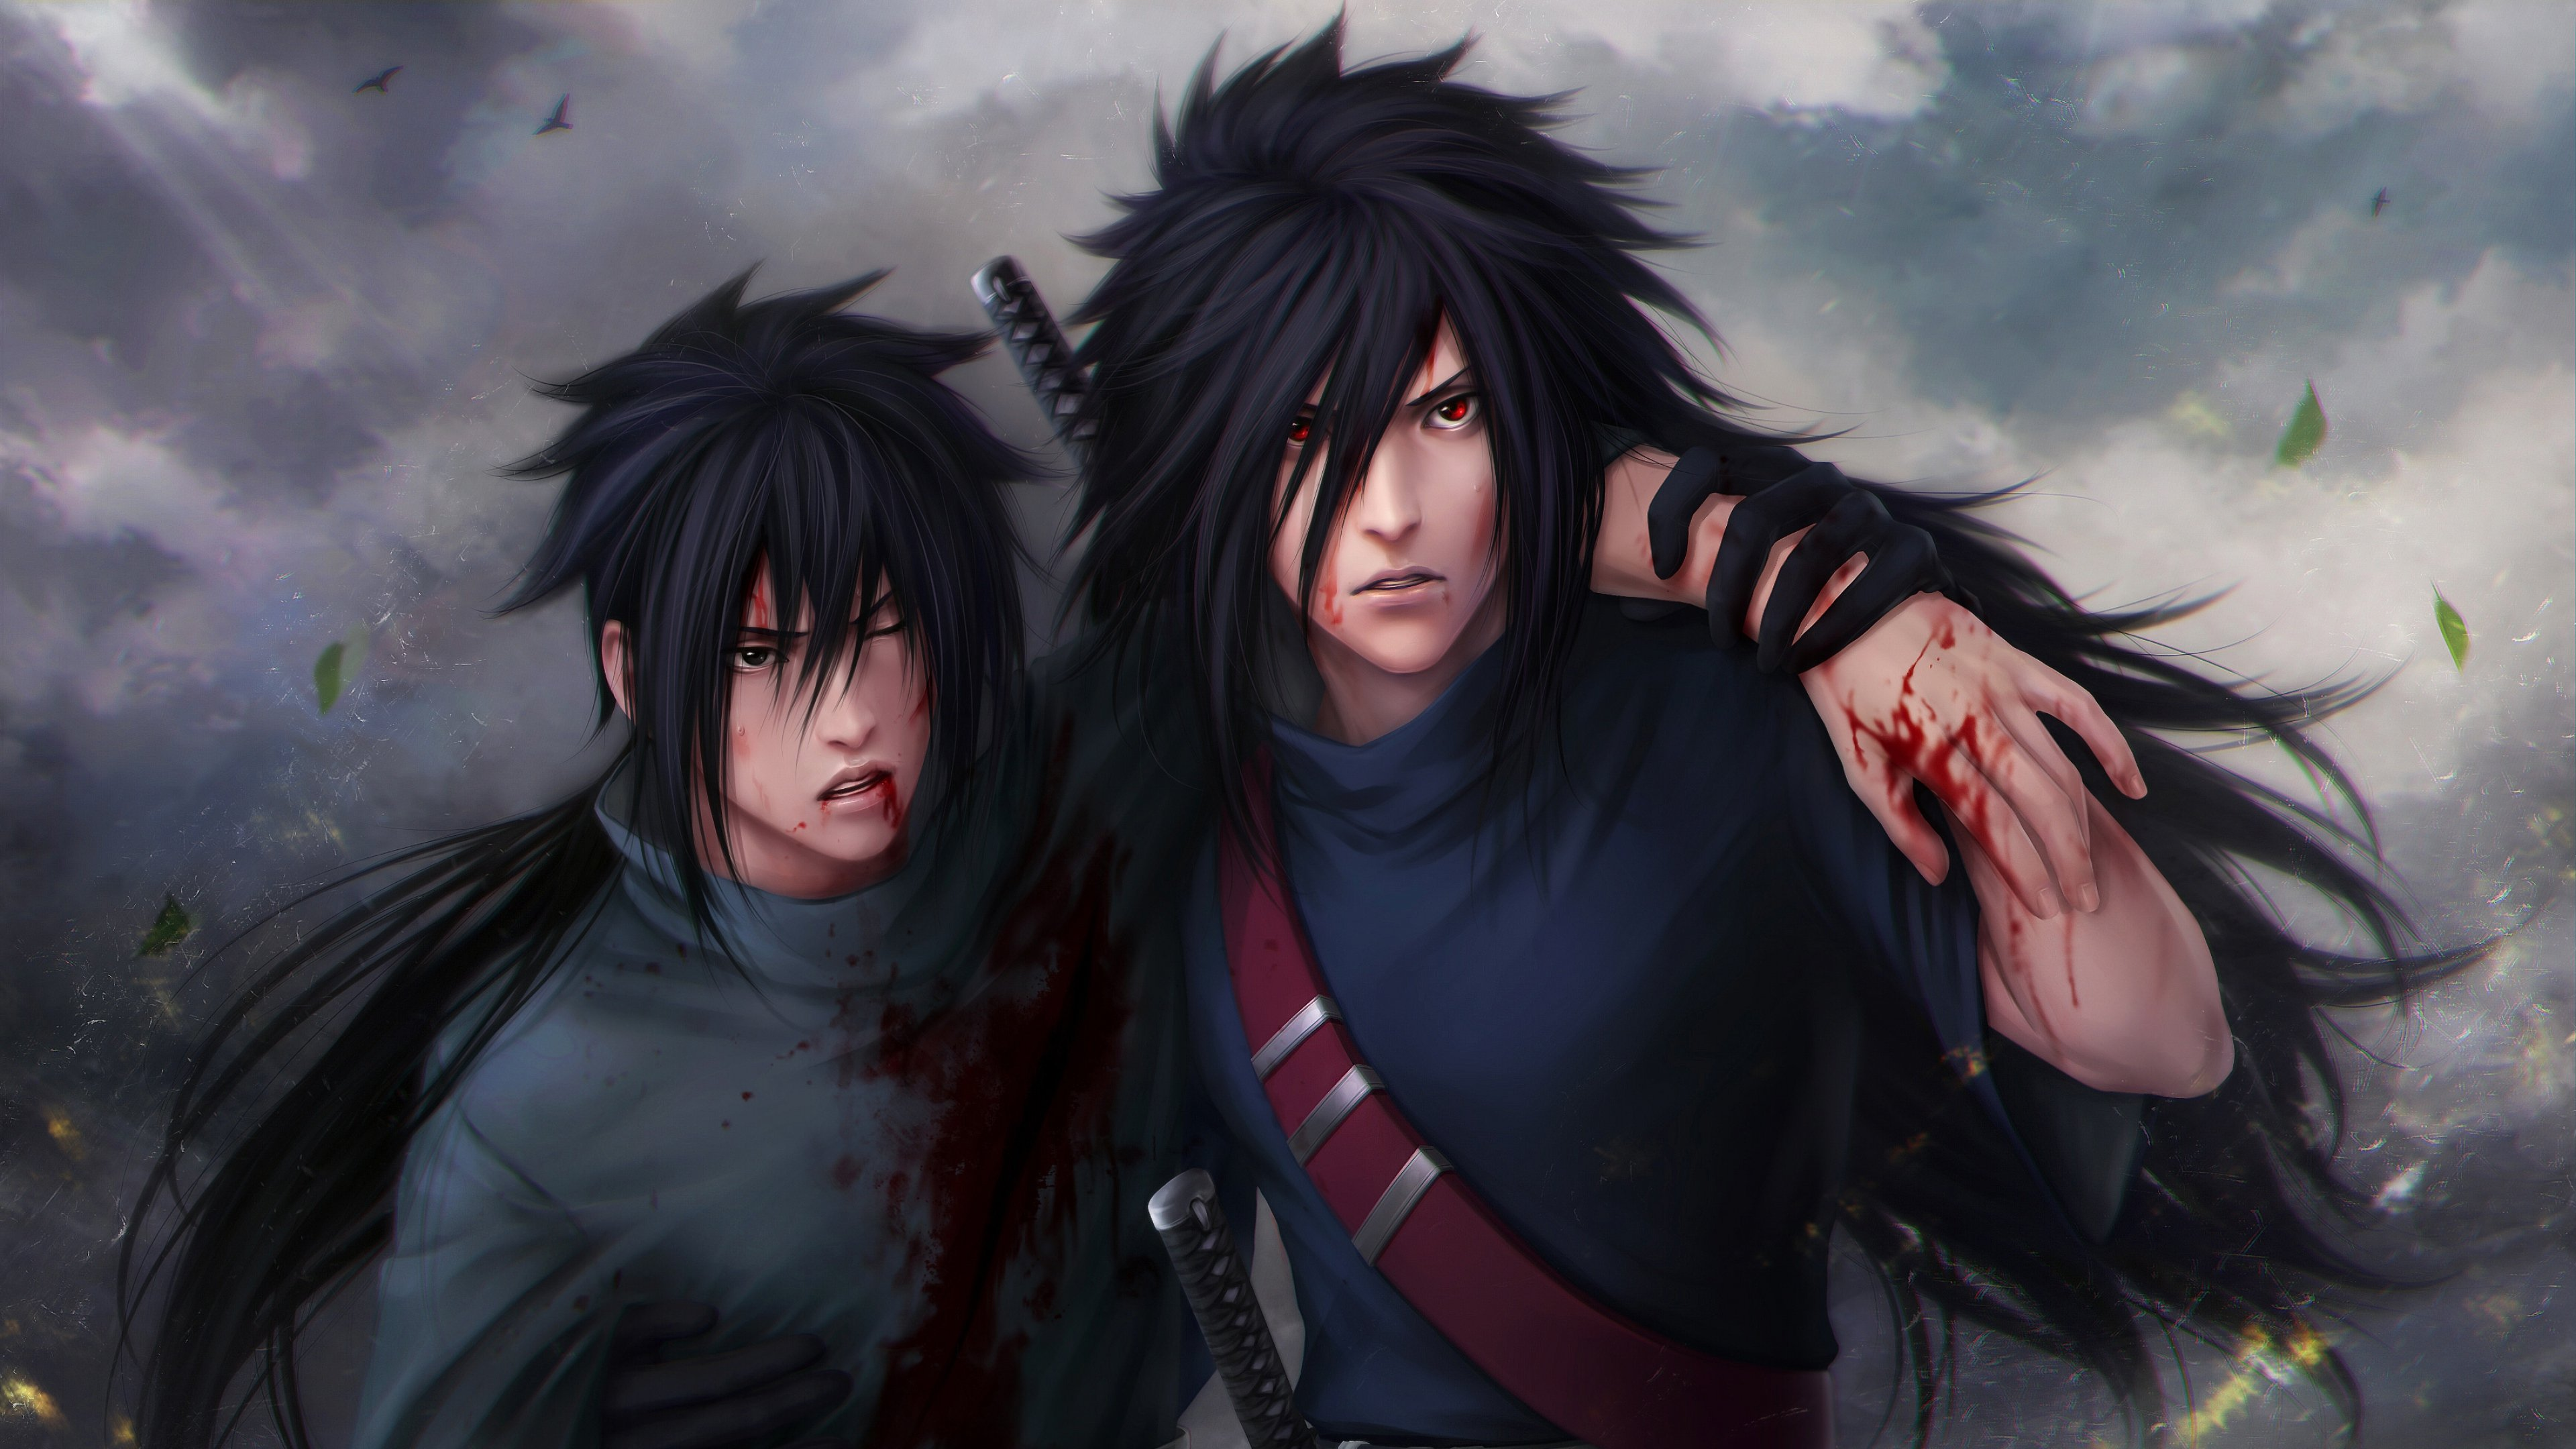 madara uchiha wallpaper 3840x2160